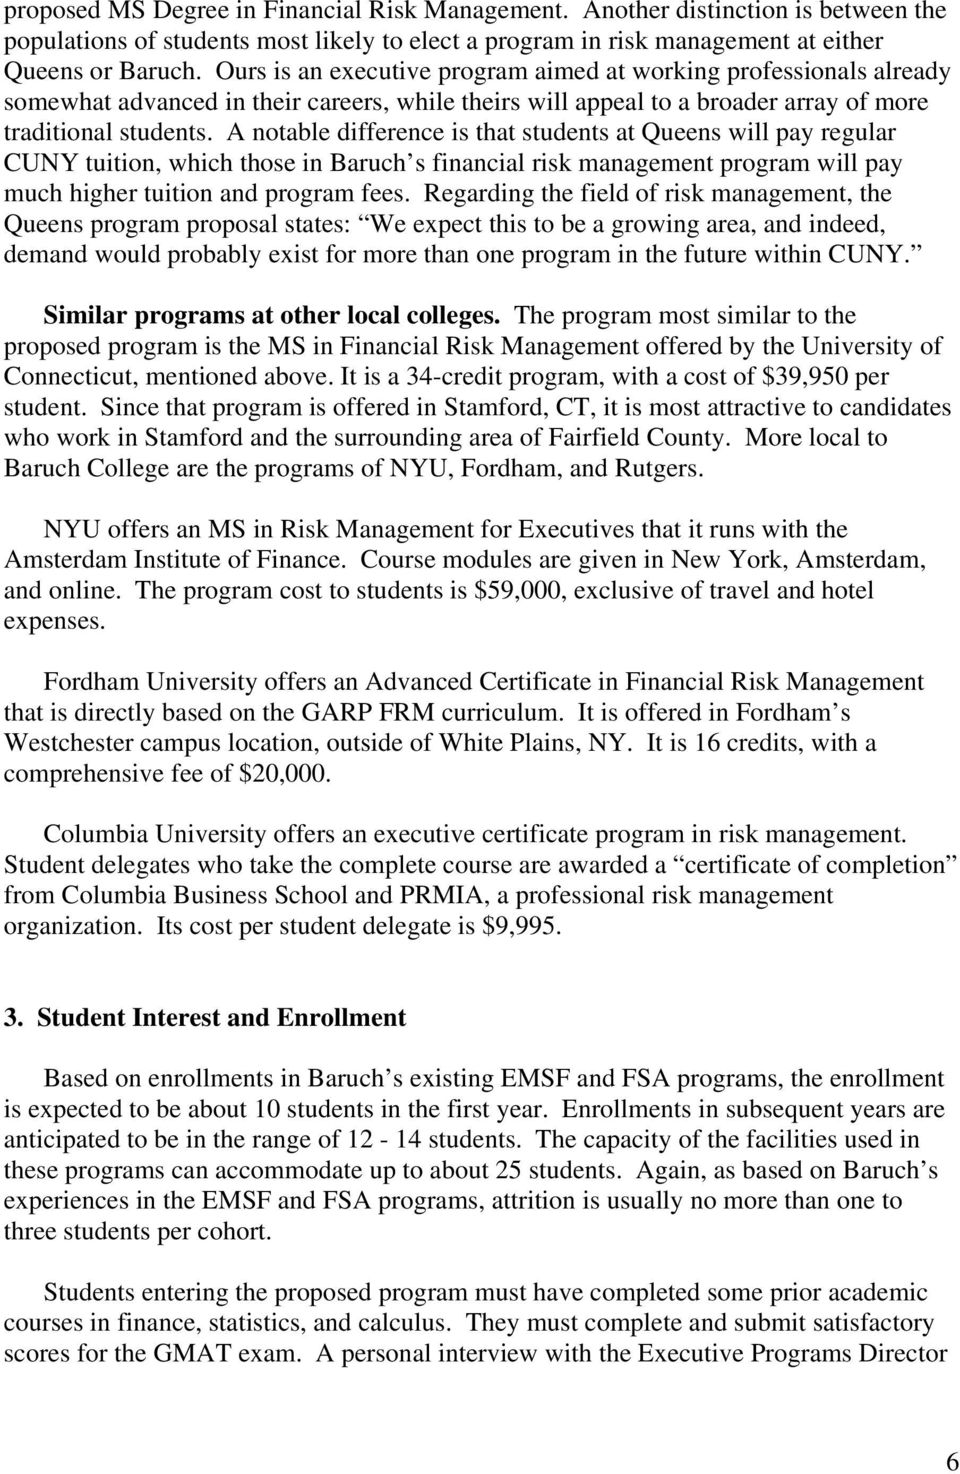 Baruch College Of The City University Of New York Pdf